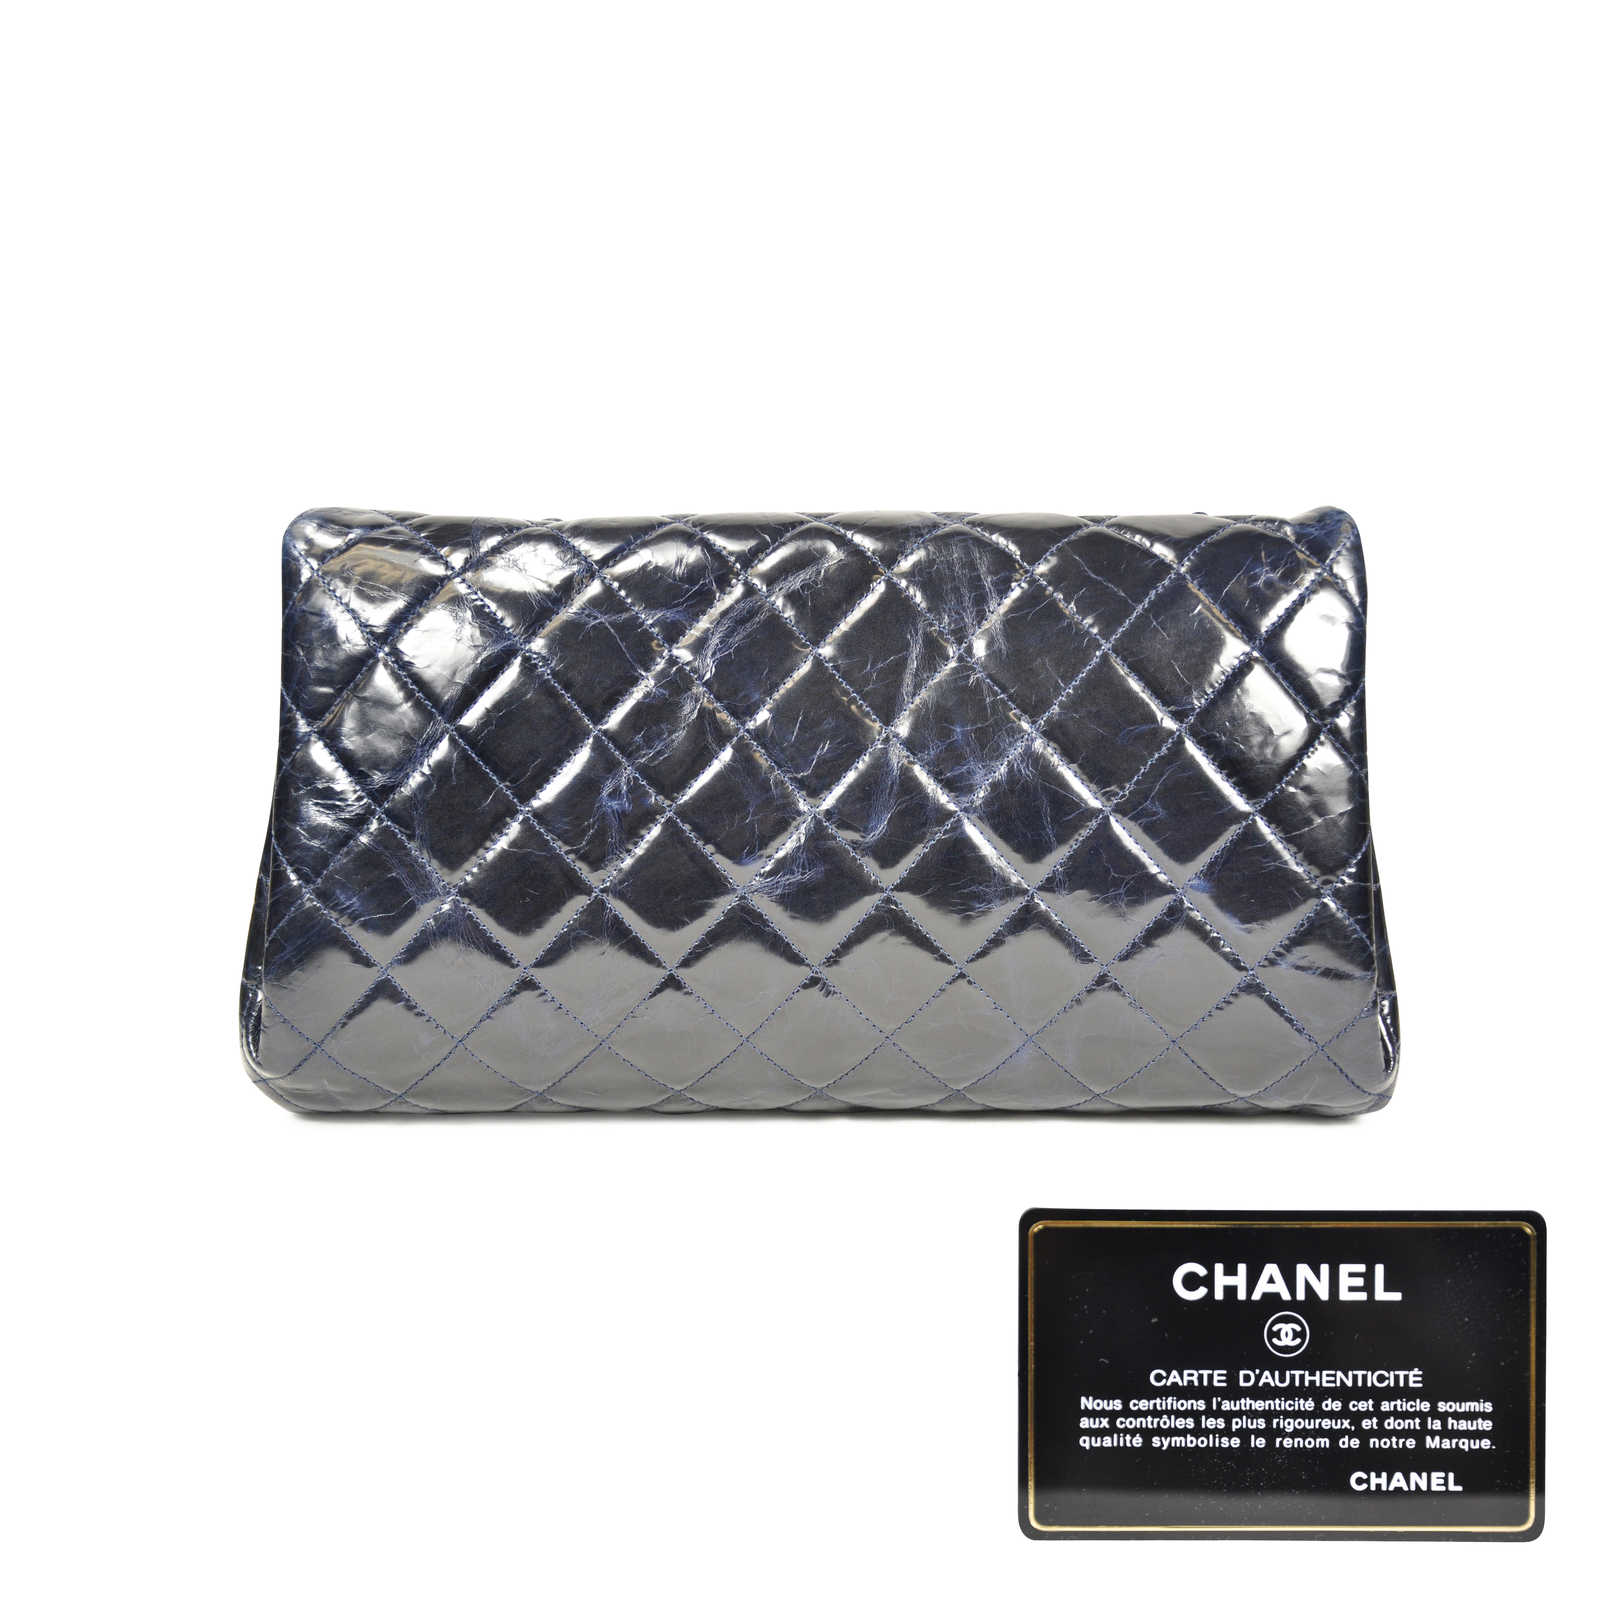 0590c9948867 ... Authentic Second Hand Chanel Glazed Calfskin Classic Flap Style Bag  (PSS-062-00008 ...